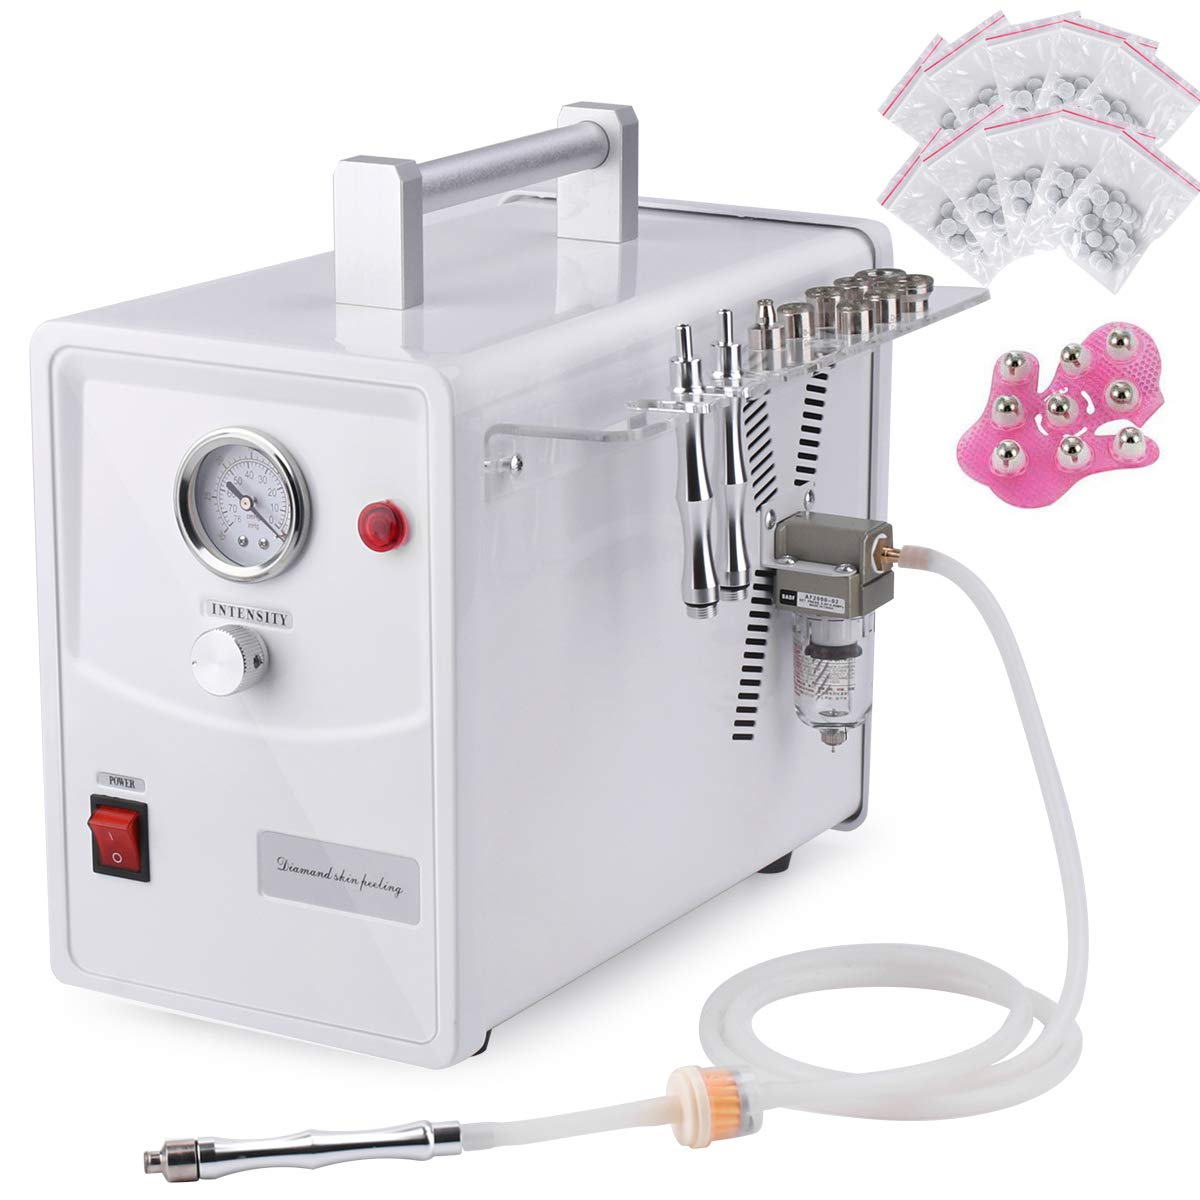 Microdermabrasion Machine with 600pcs Cotton Filter, MYSWEETY Professional Diamond Microdermabrasion Dermabrasion Salon Equipment for Facial Peeling Skin Care Spa (Suction Power: 0-68cmHg)